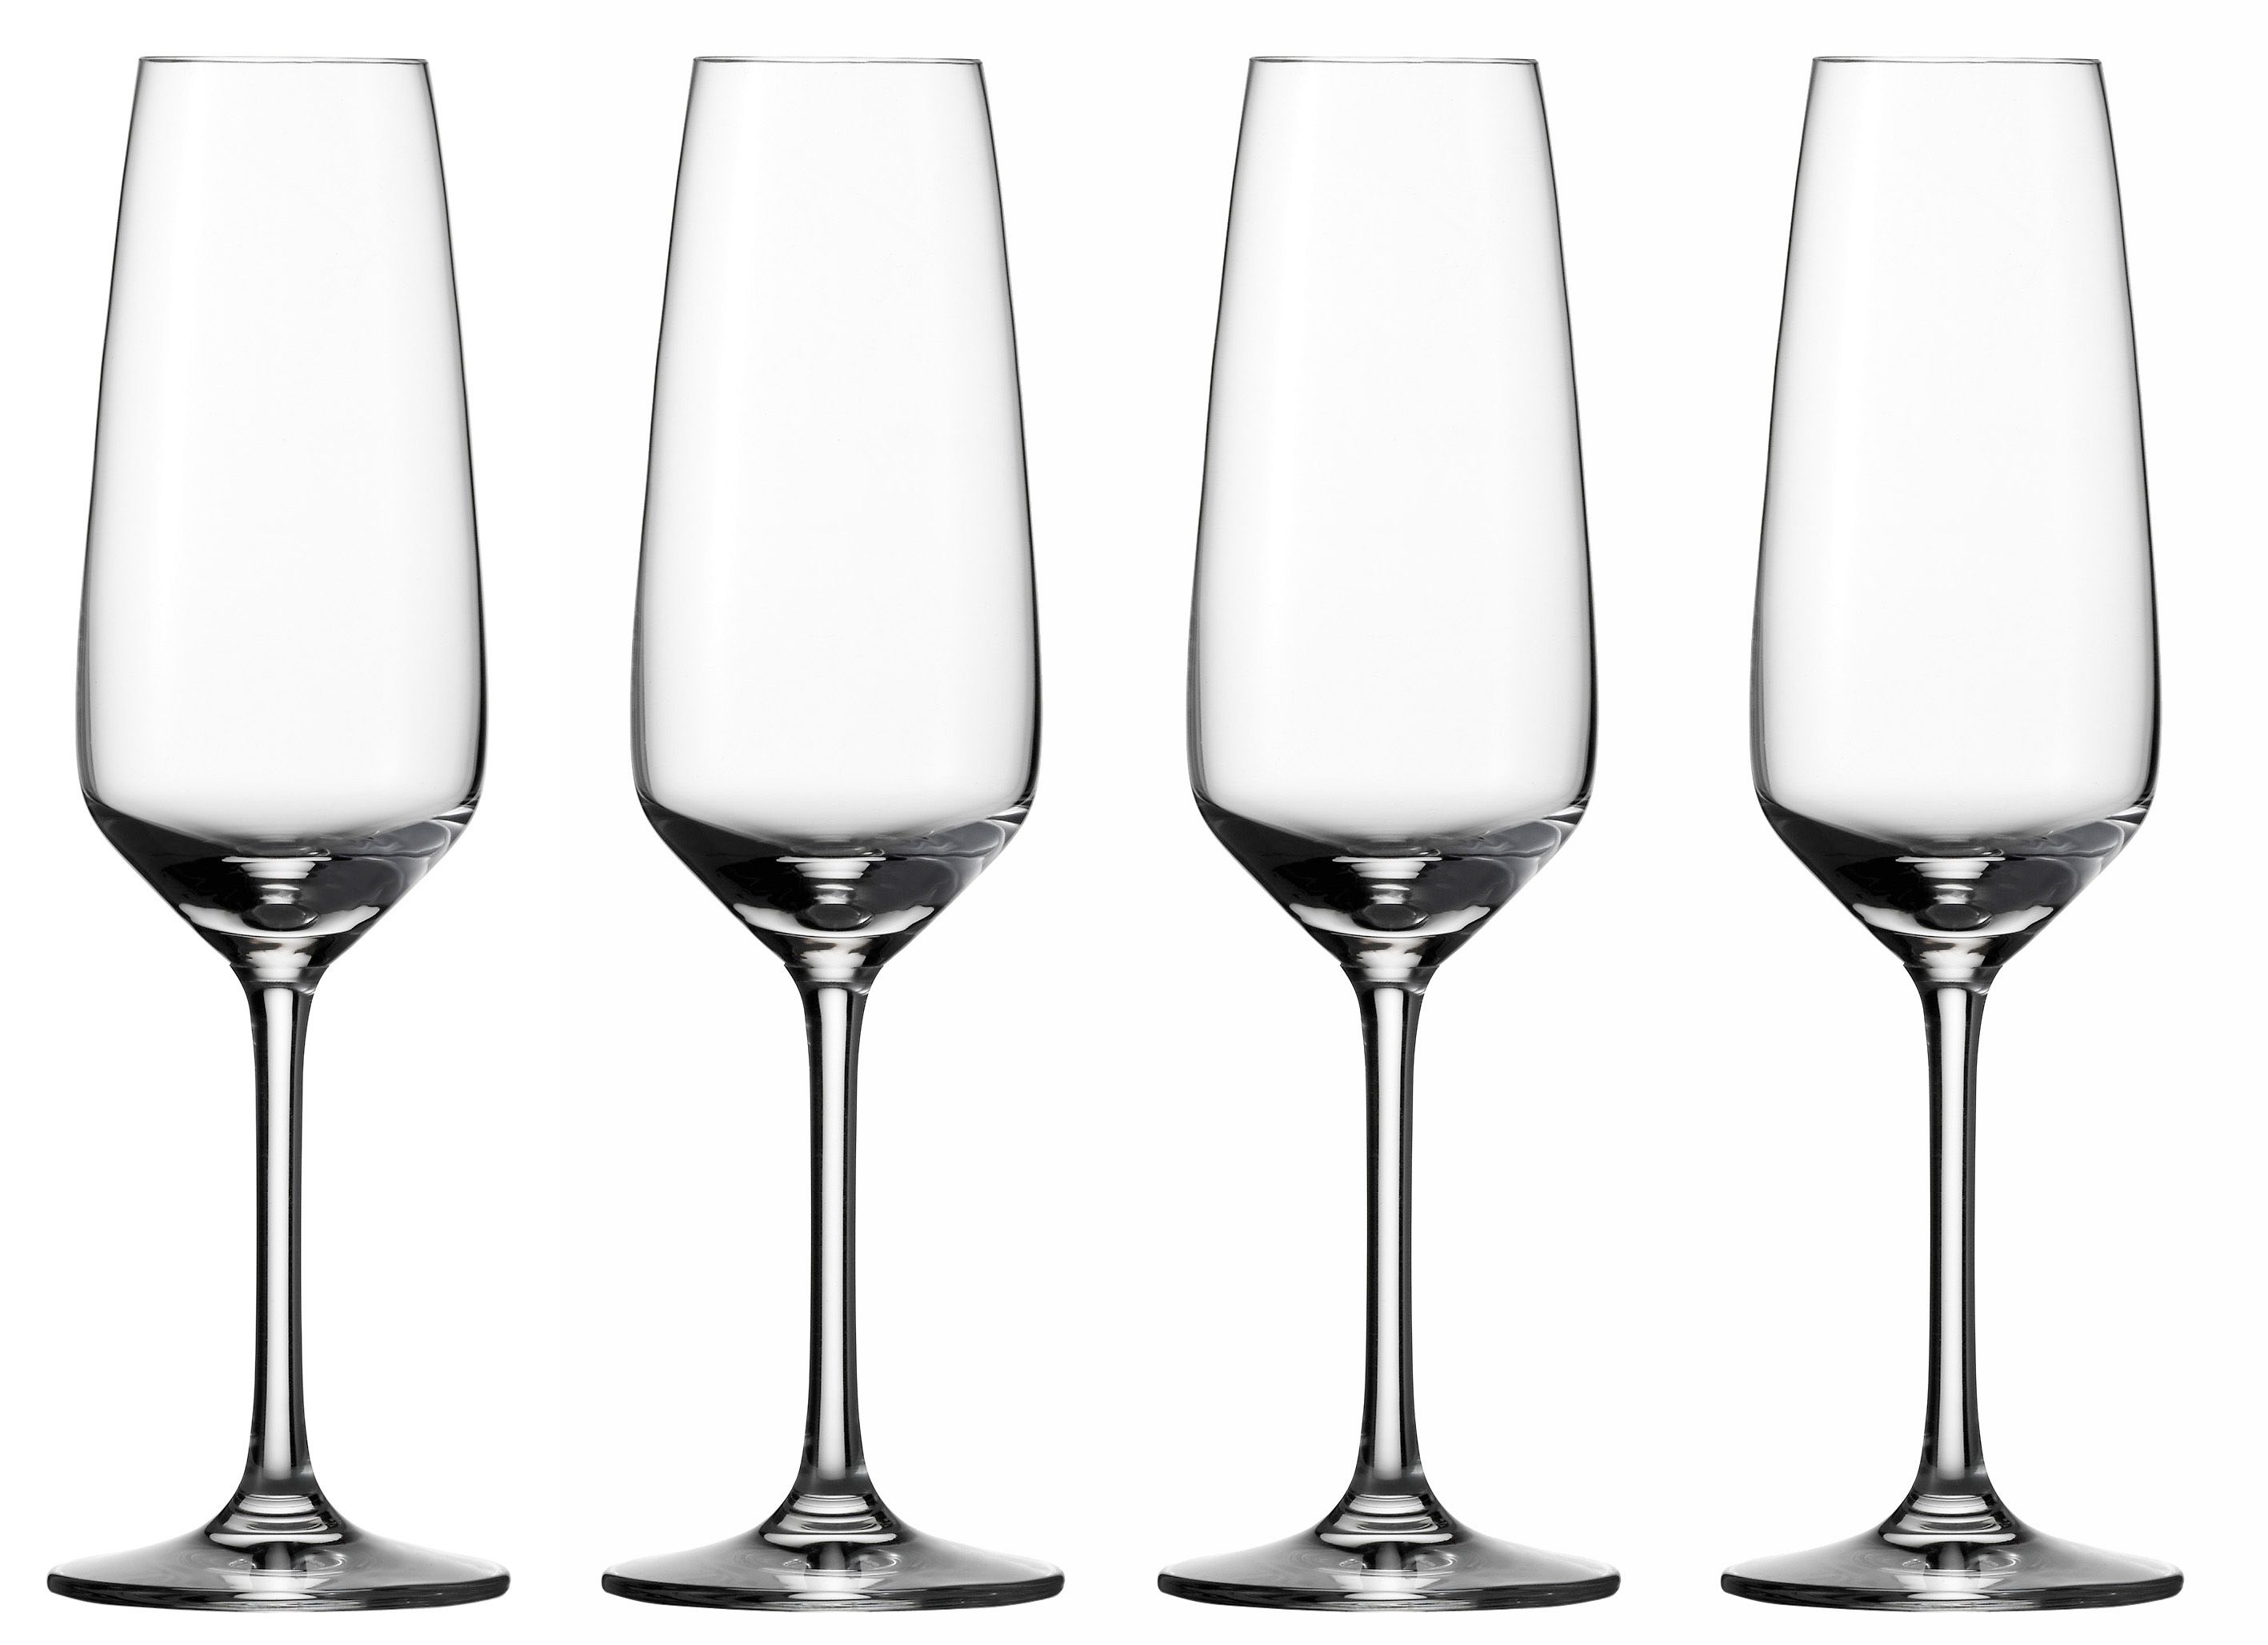 Image of Vivo by Villeroy & Boch 4 voice basic champagne flutes